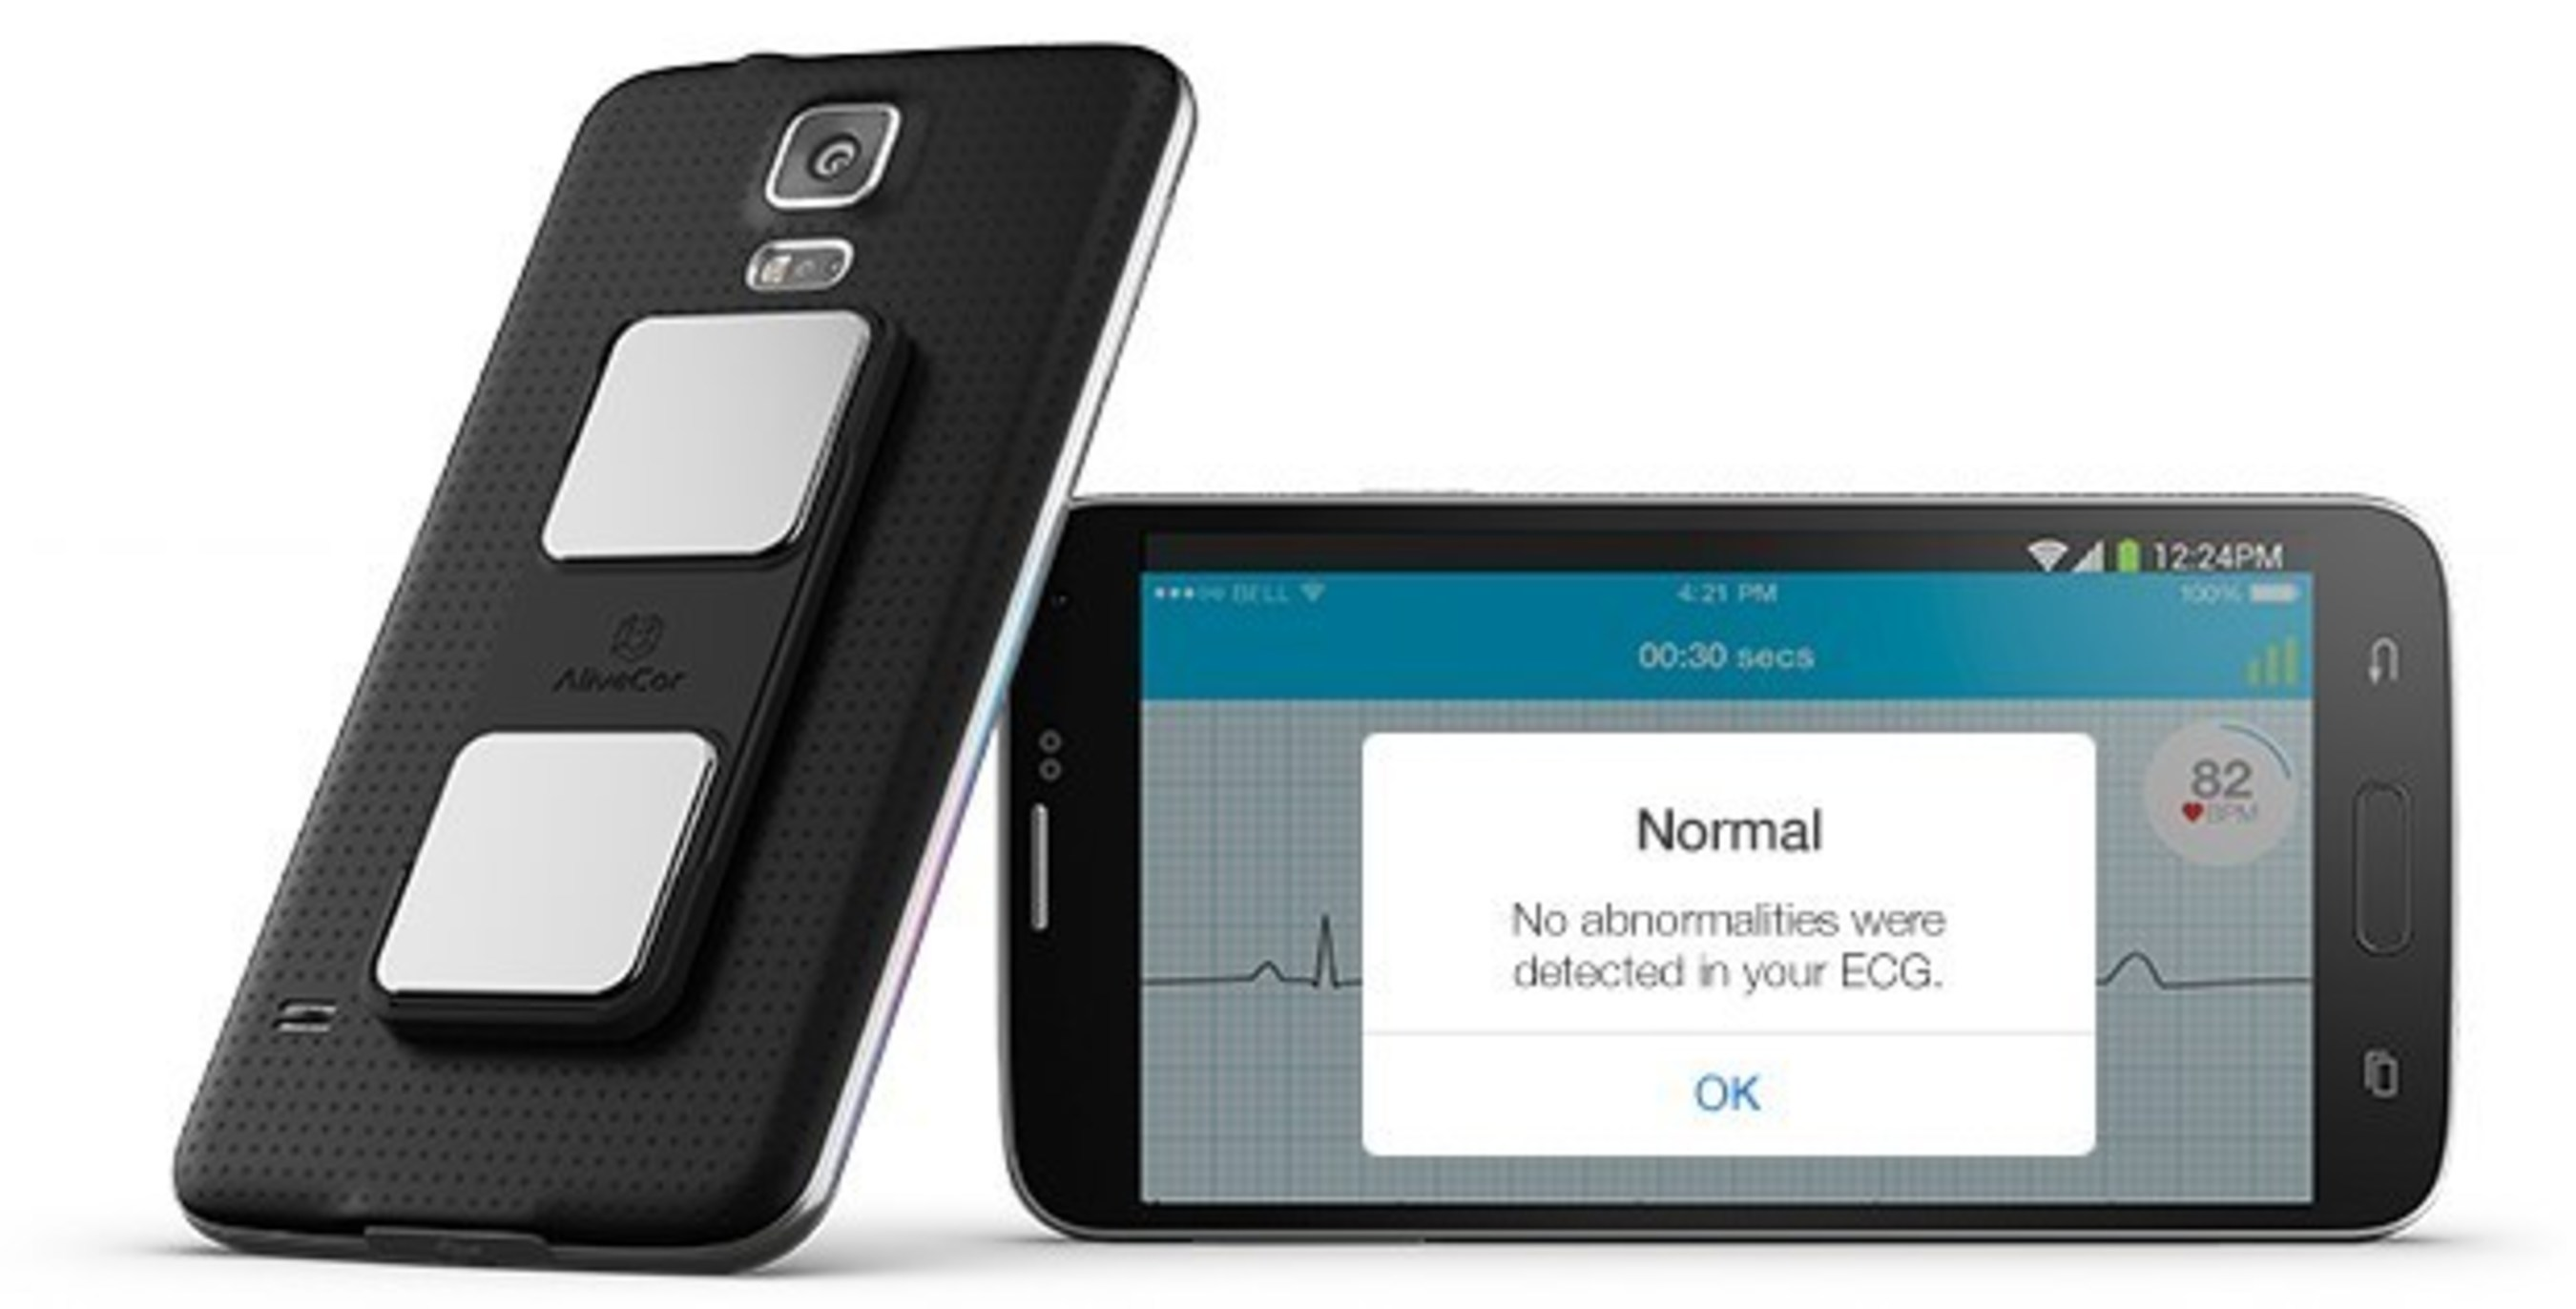 AliveCor Launches New App that Automatically Tells Patients When Their ECG Recording is Normal